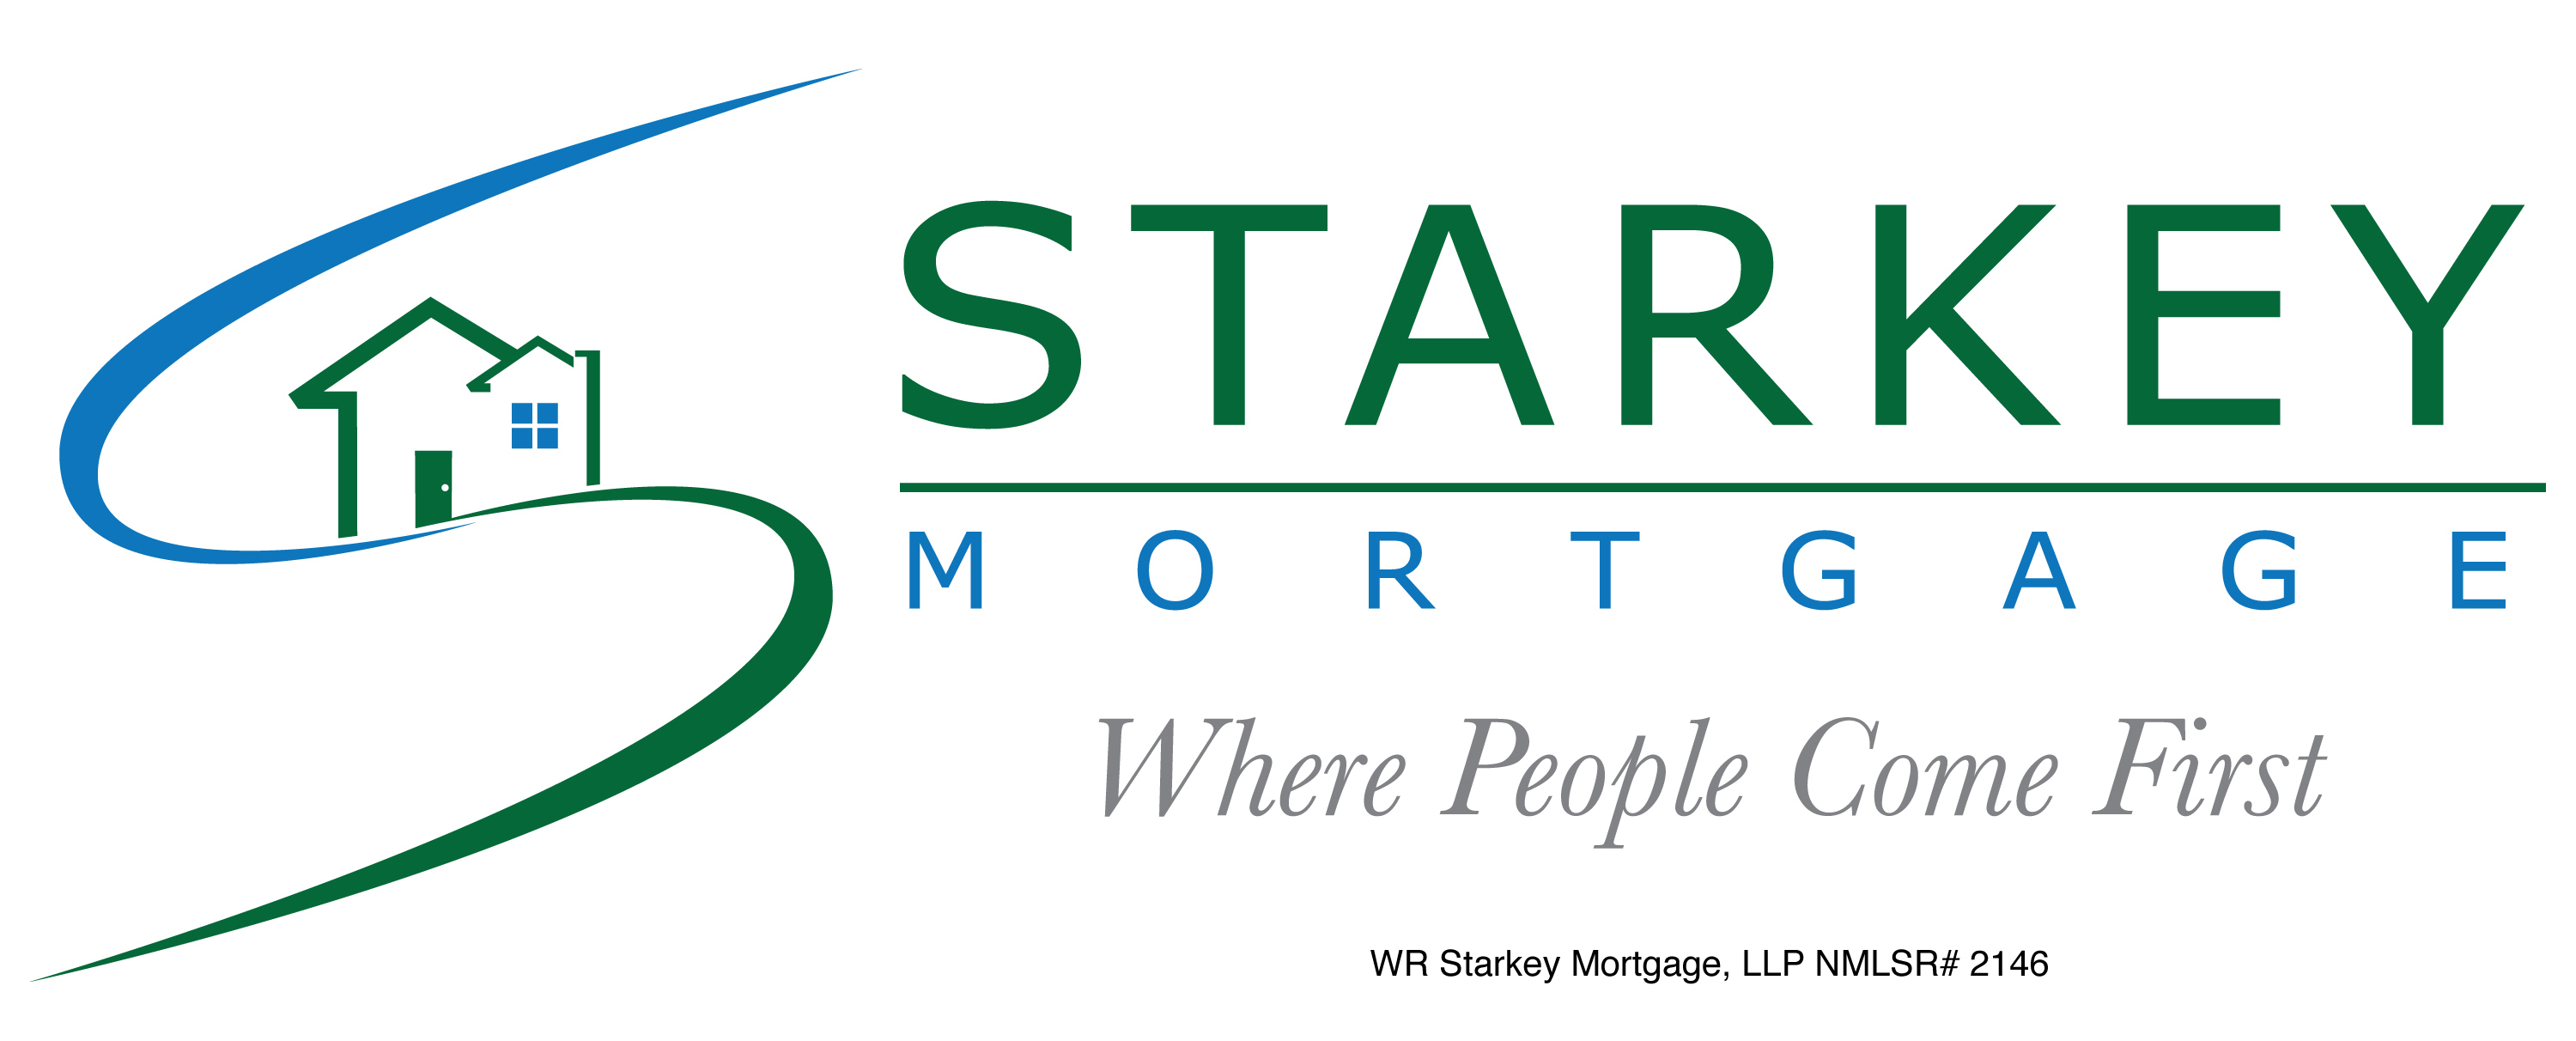 Mortgage Tips for First-Time Homebuyers: An Interview with Pamela Caldwell of Starkey Mortgage